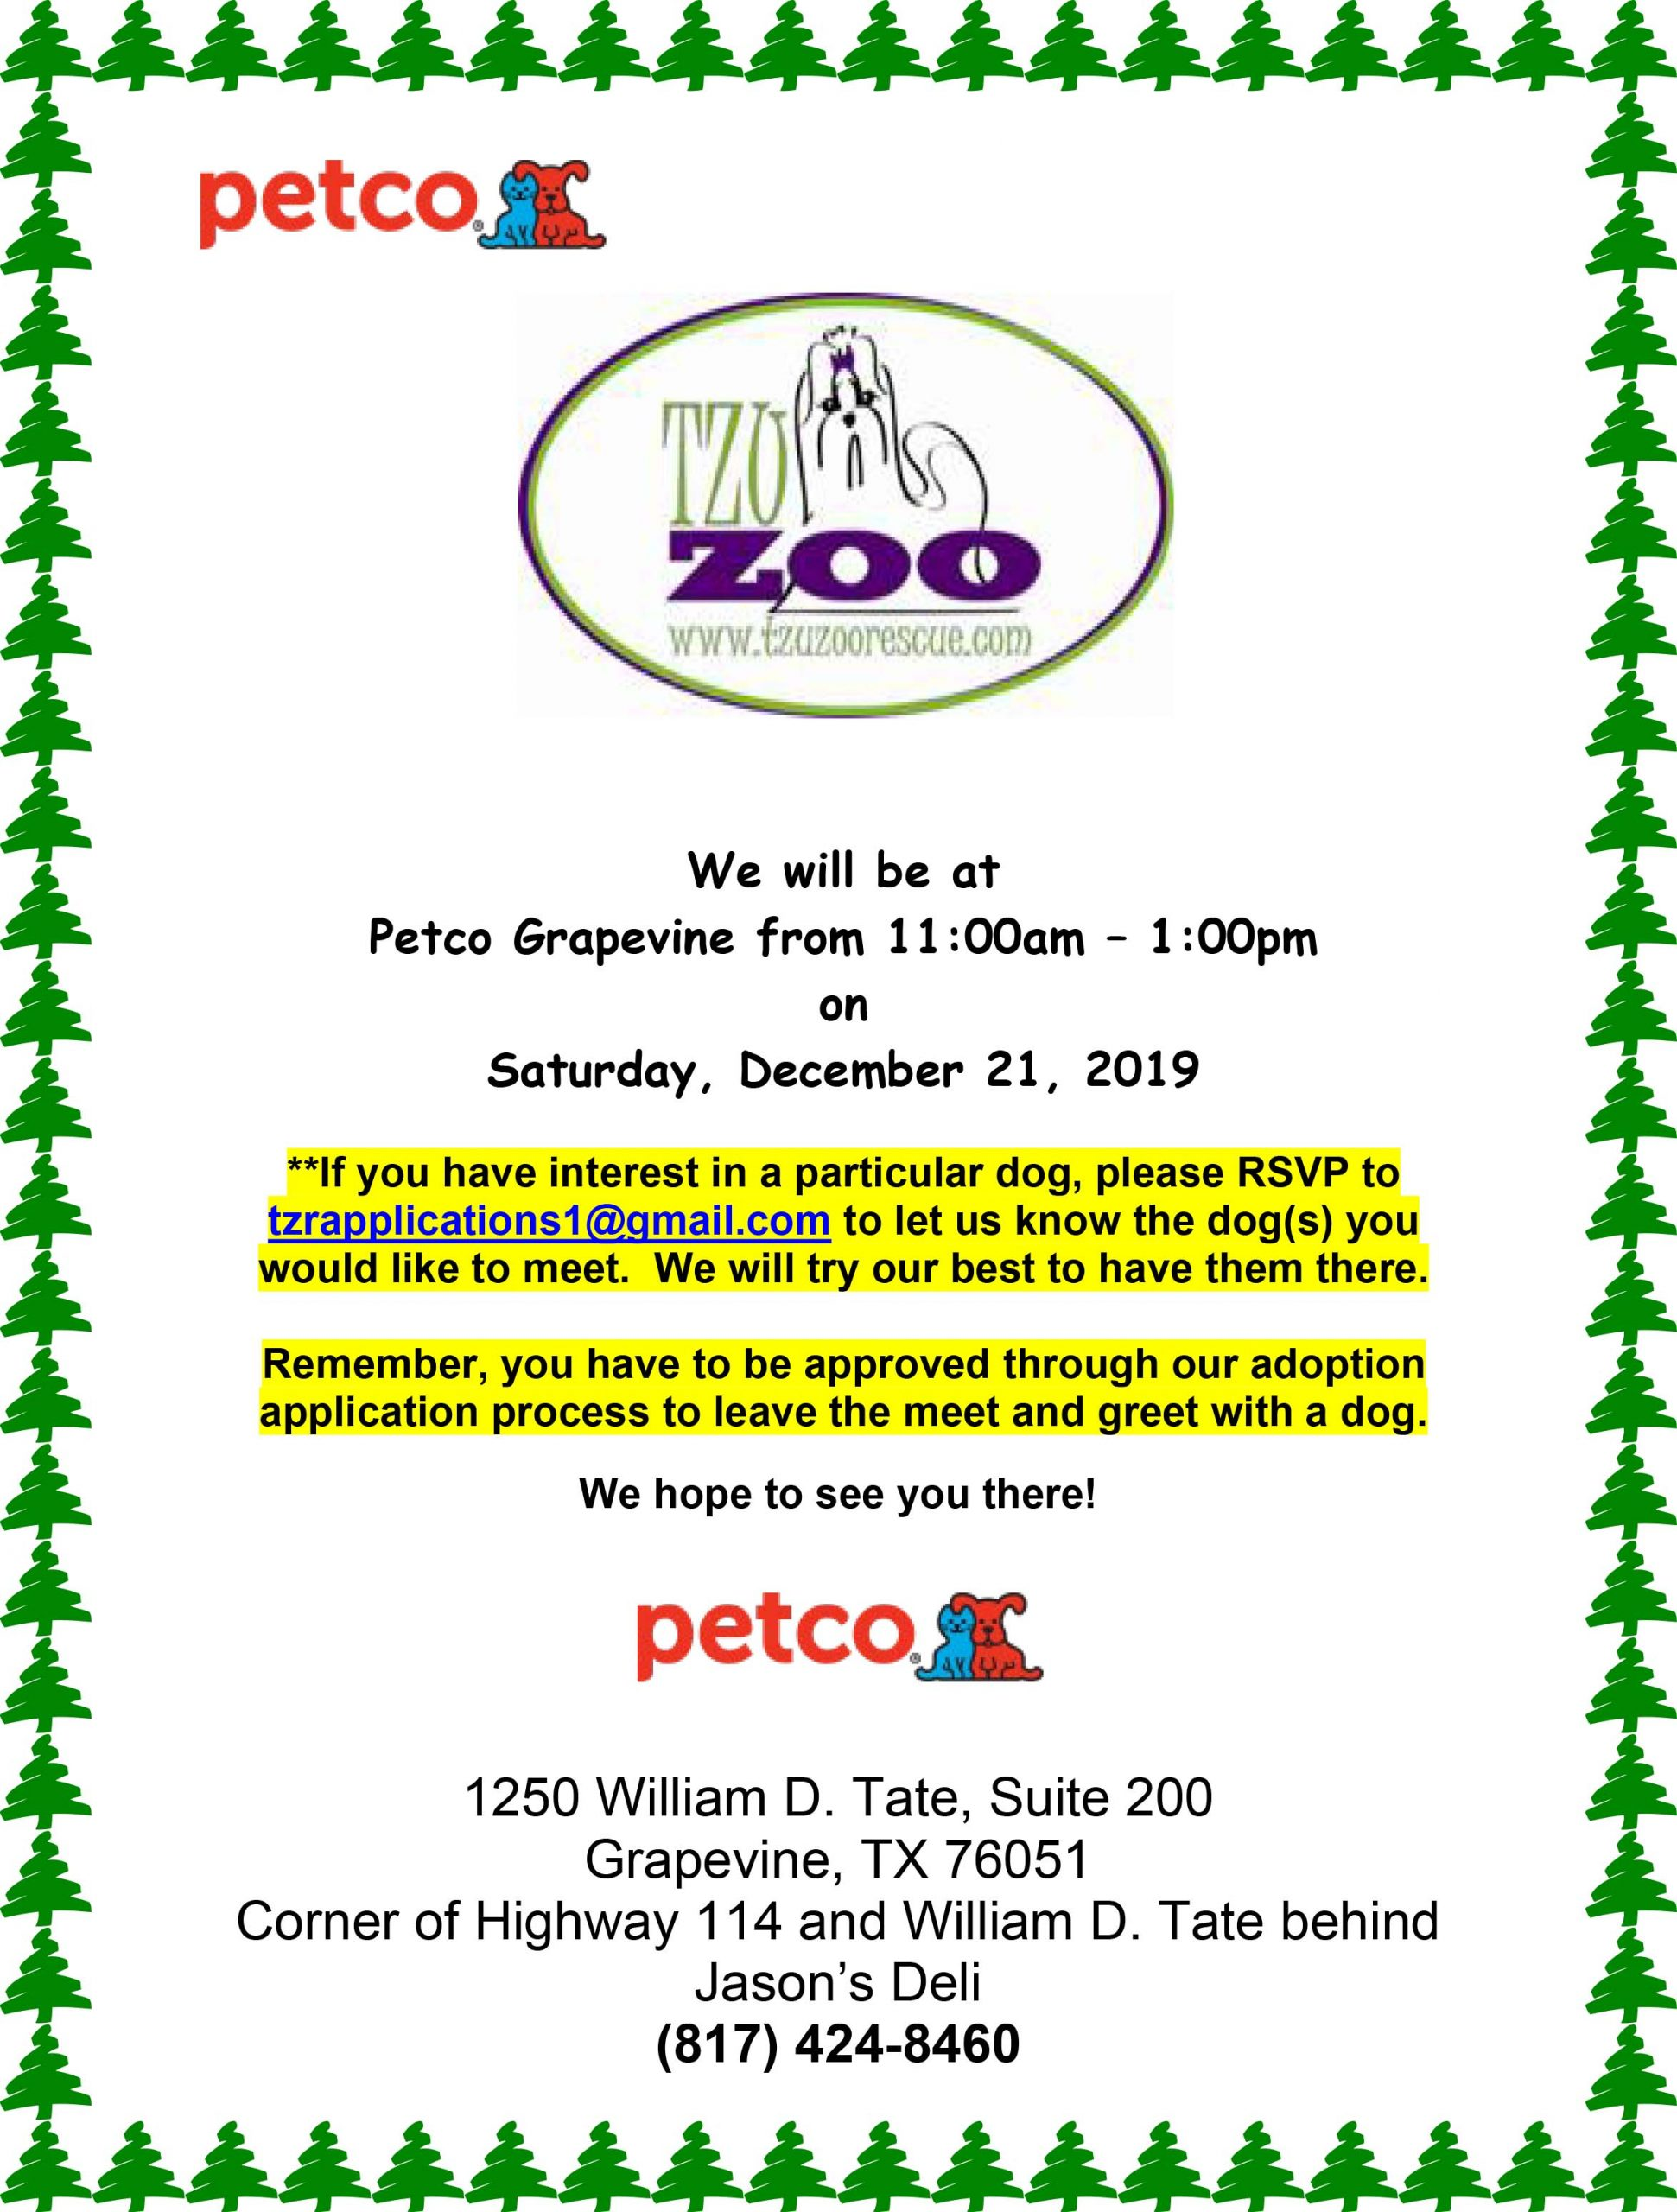 Meet & Greet - Petco Grapevine